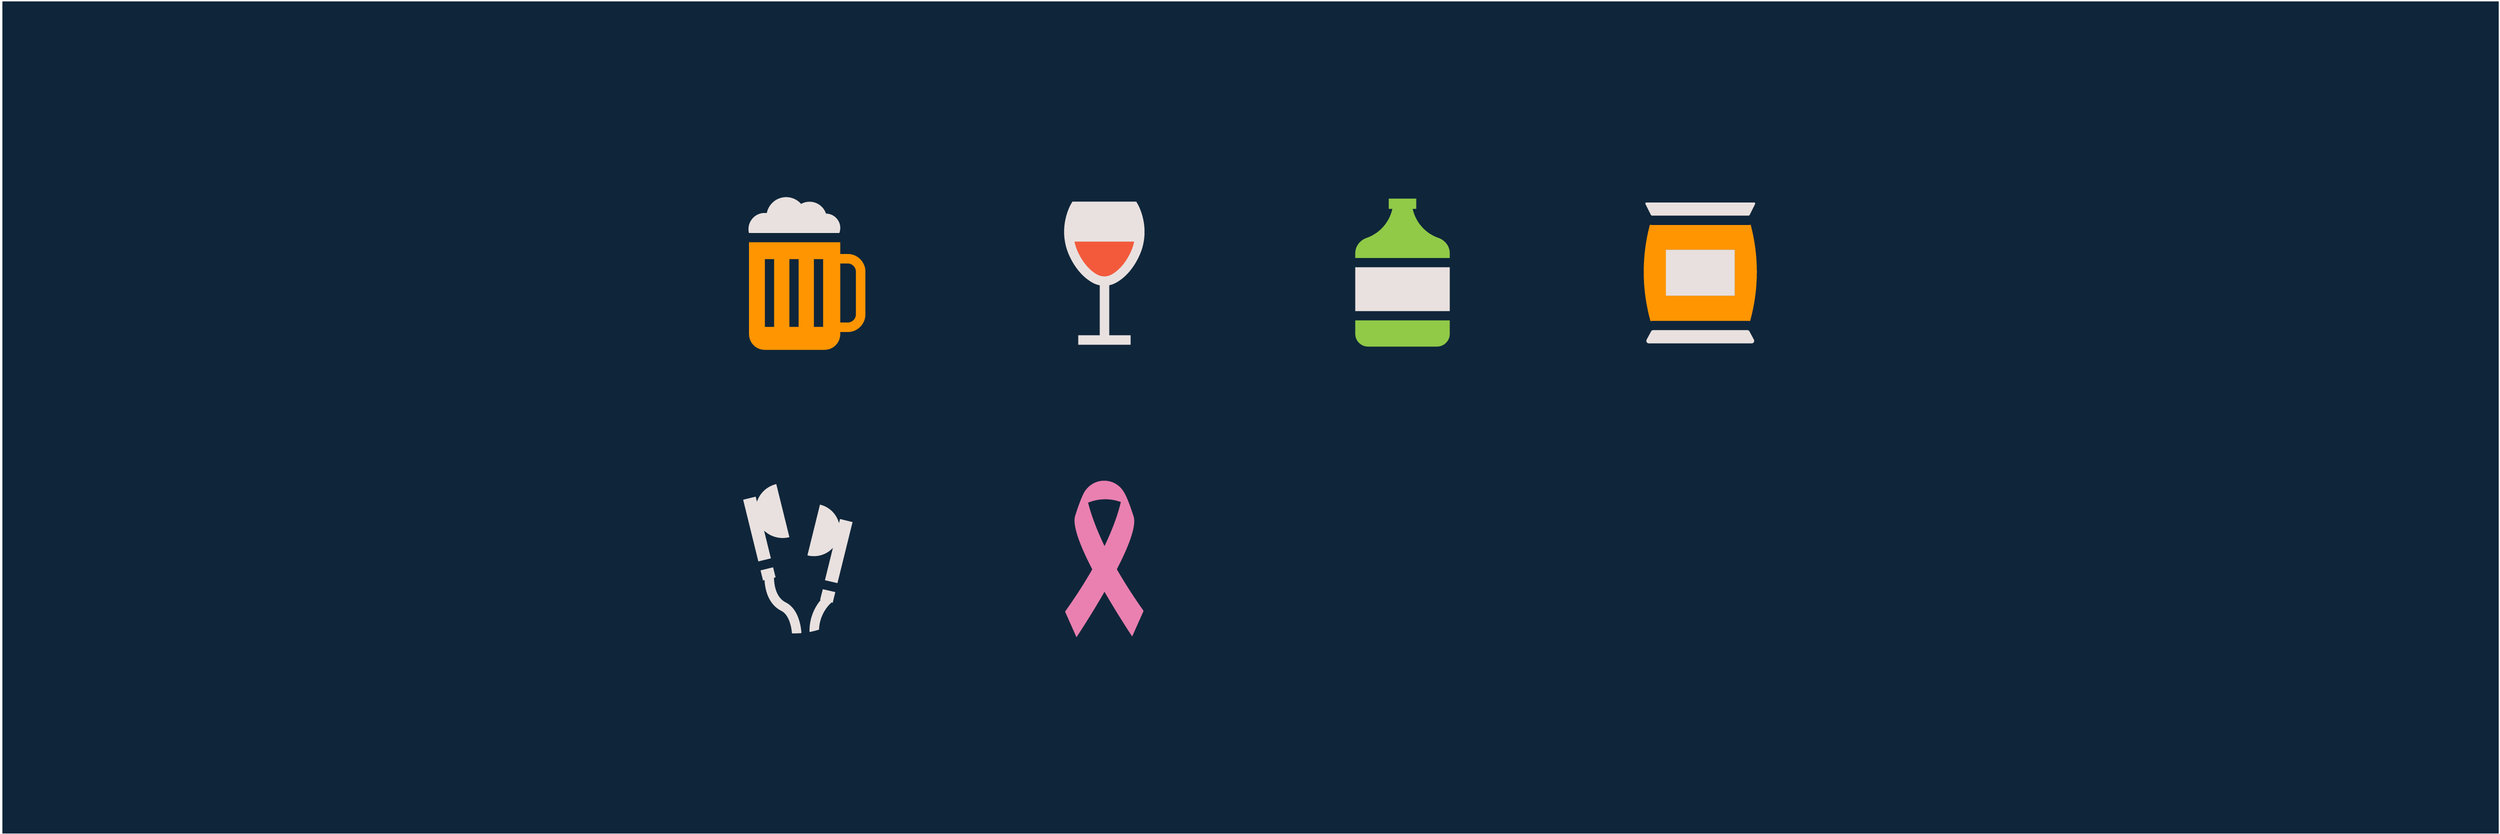 inflight-icons_GST - Color.jpg